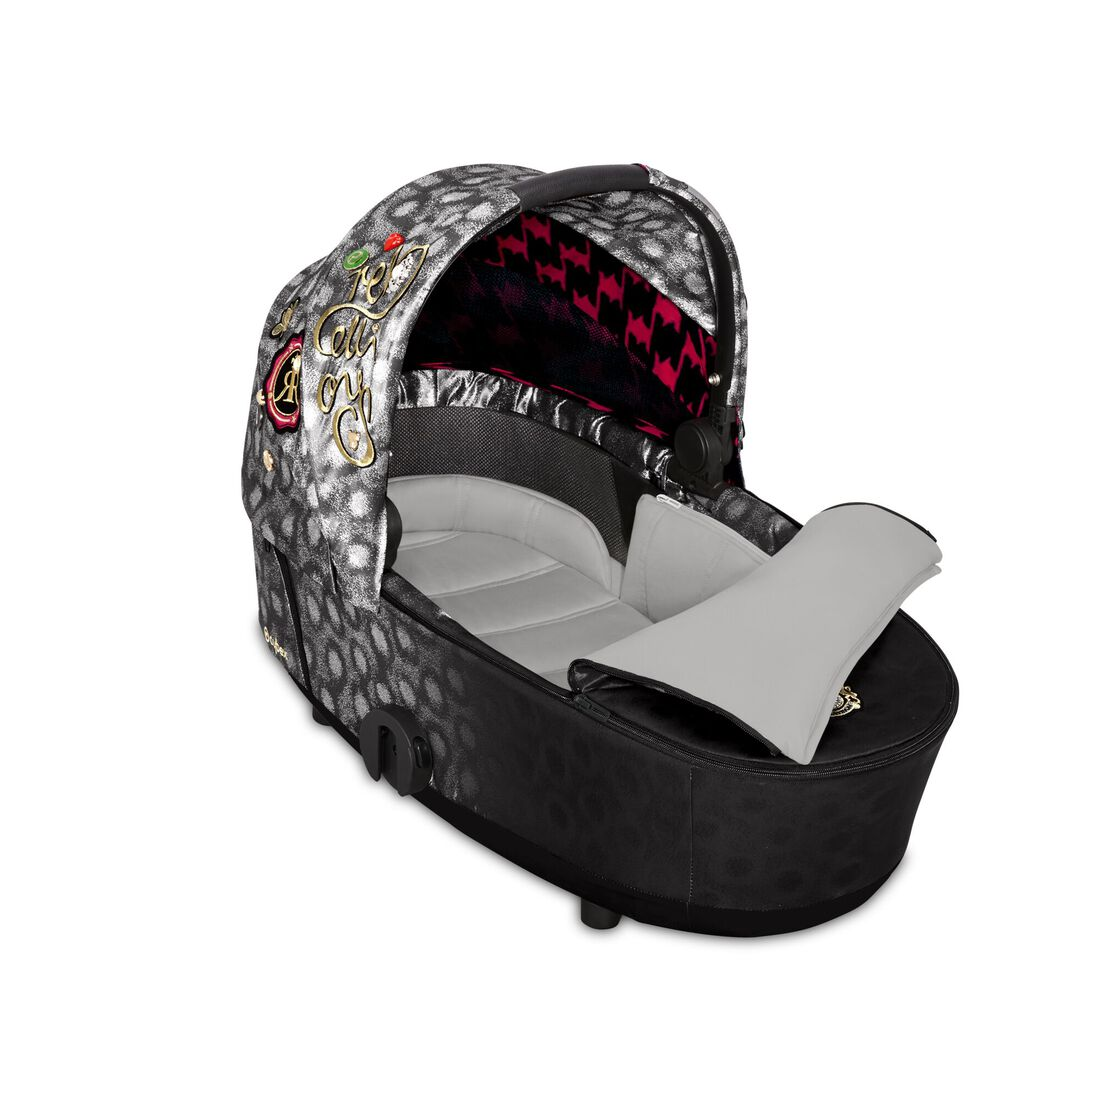 CYBEX Mios Lux Carry Cot - Rebellious in Rebellious large Bild 2